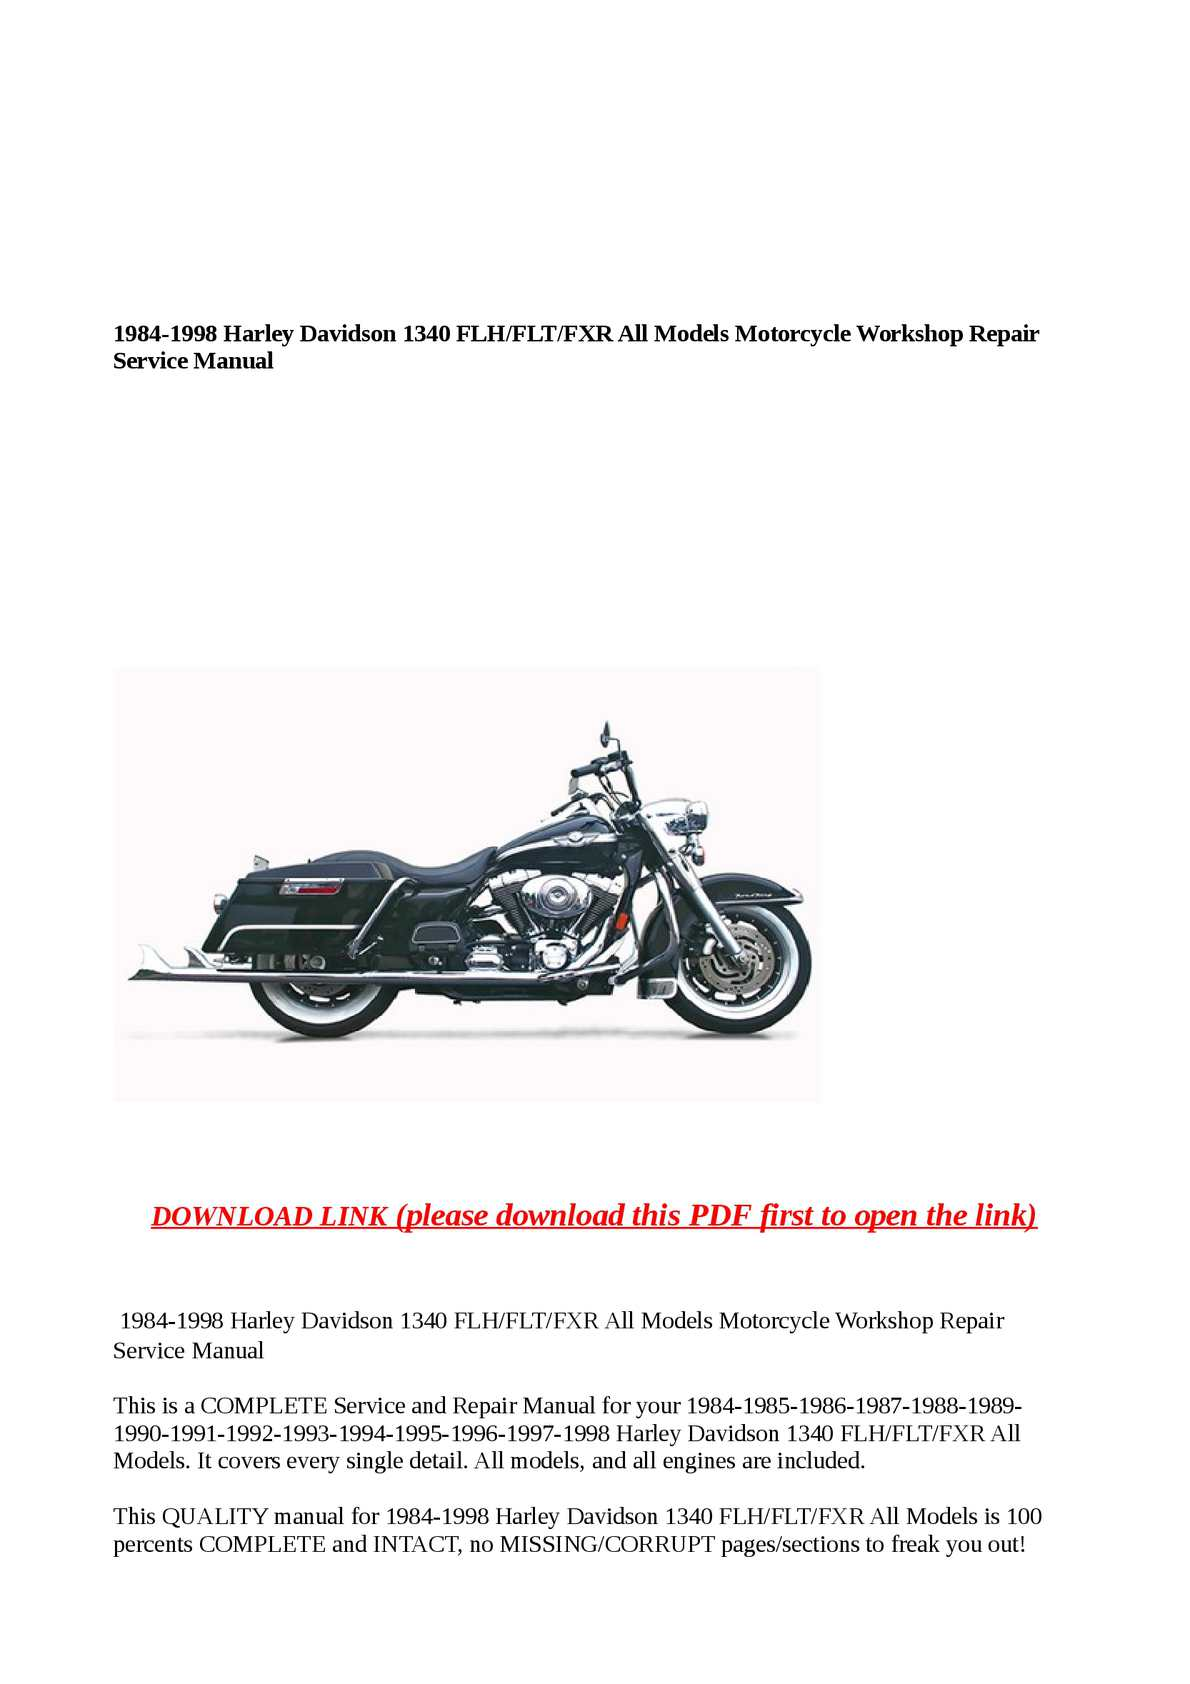 1984-1998 harley davidson 1340 flh/flt/fxr all models motorcycle